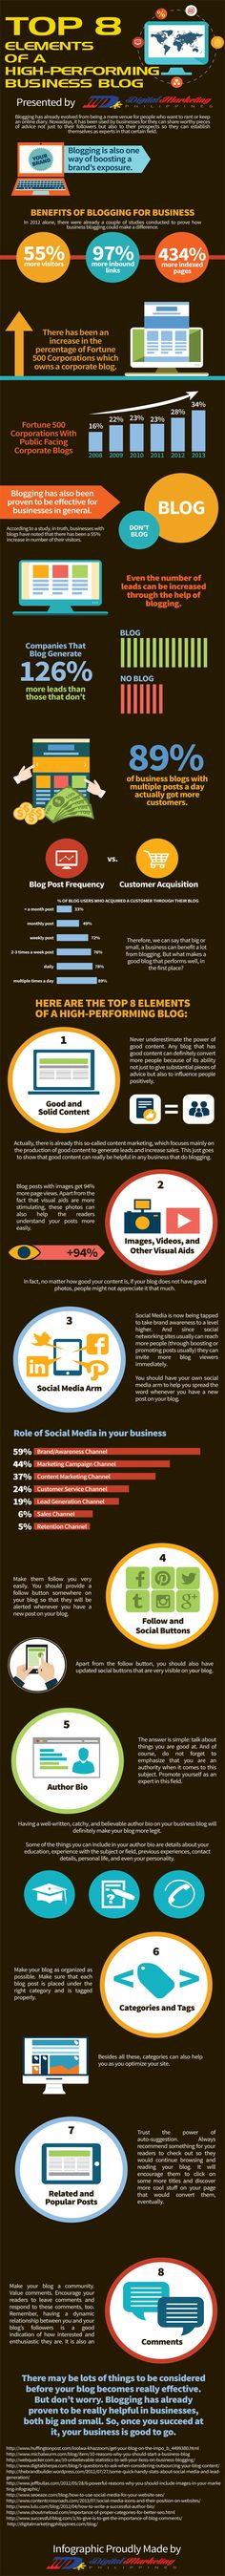 Why A Business Blog Is Important | Infographic - The Main Street Analyst